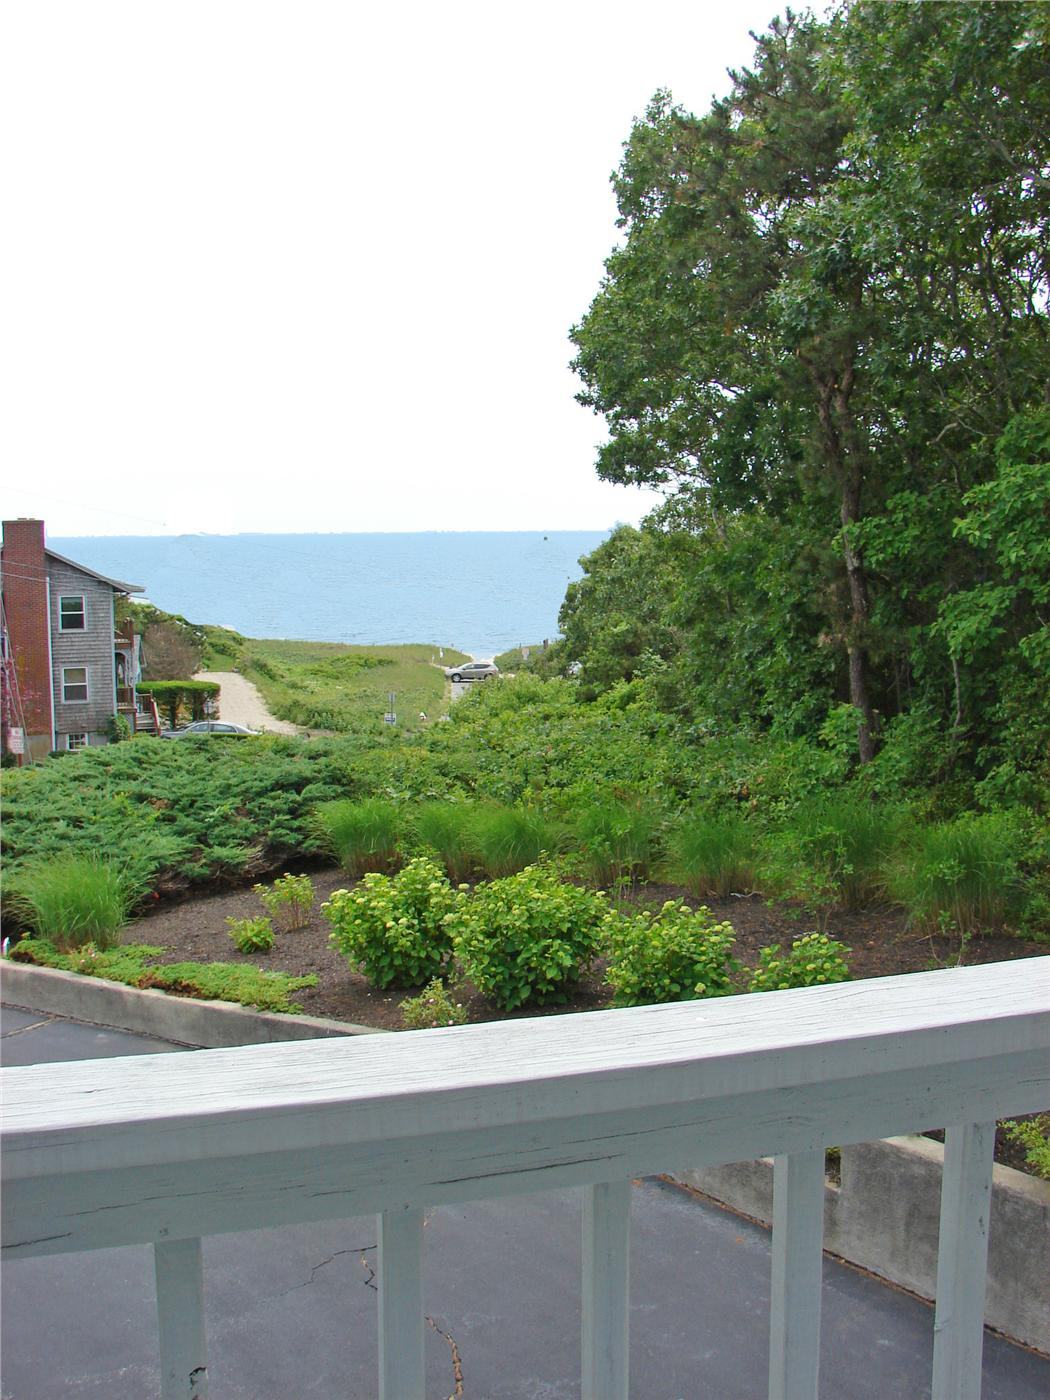 Chatham Vacation Rental Home In Cape Cod Ma 02659 500 Ft To Pleasant Street Beach Id 15724